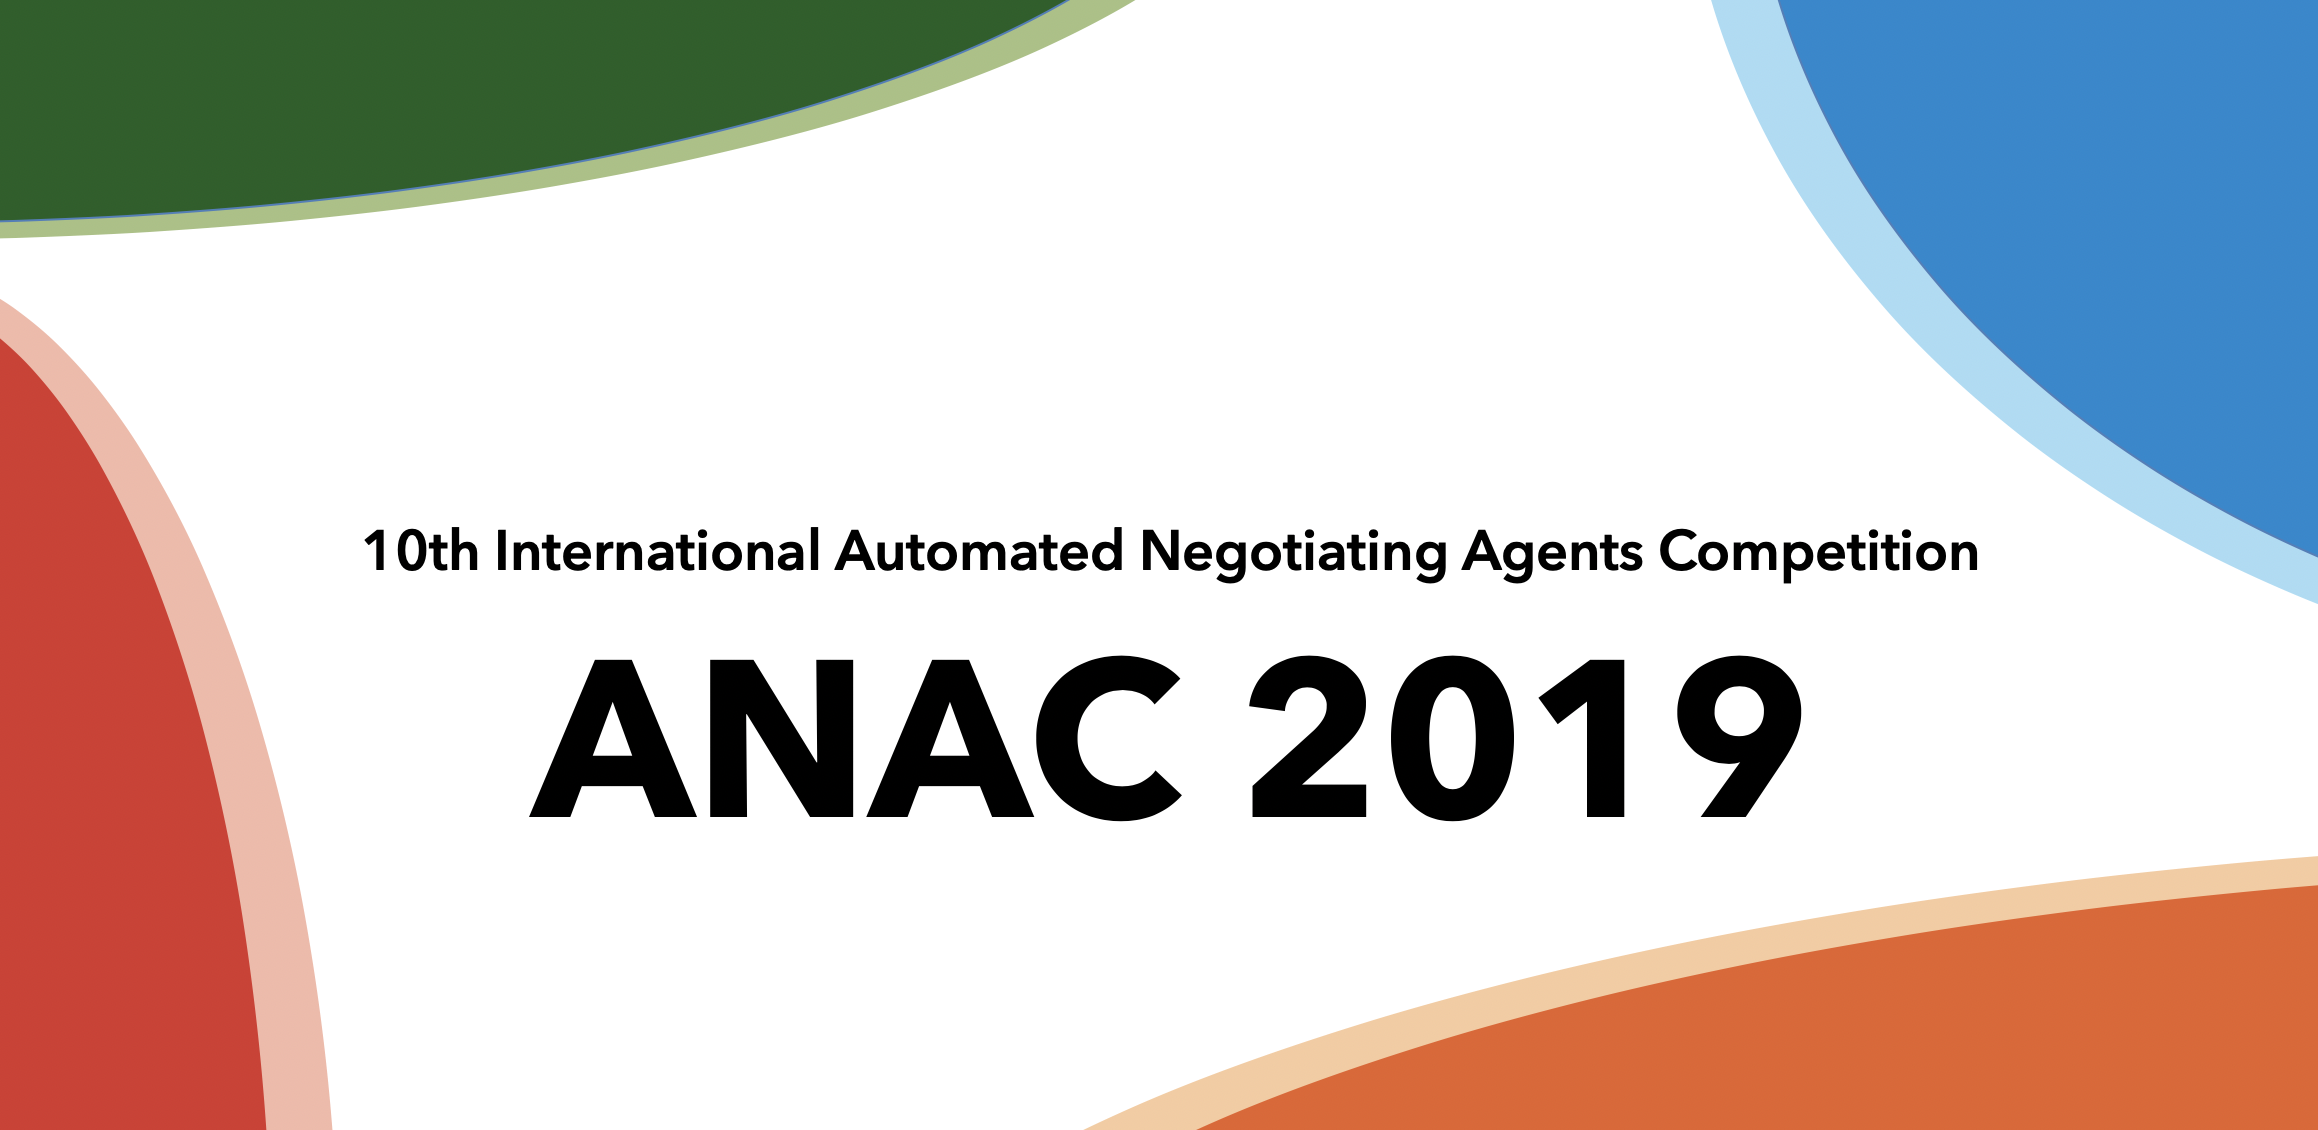 ANAC2019 - Tenth Automated Negotiating Agents Competition